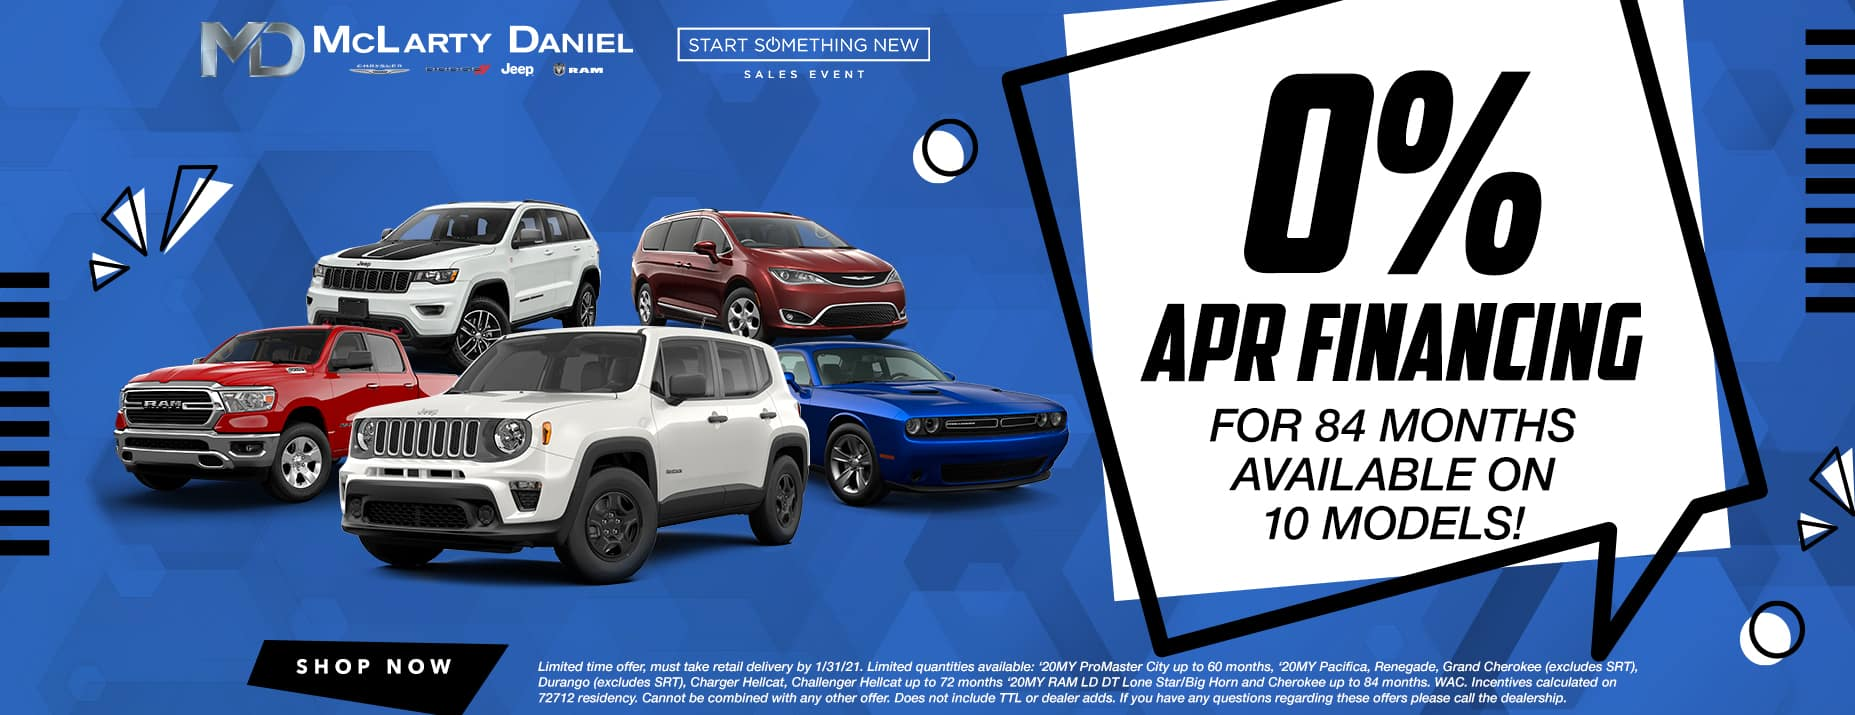 0% APR for up to 84 months available on 10 models!